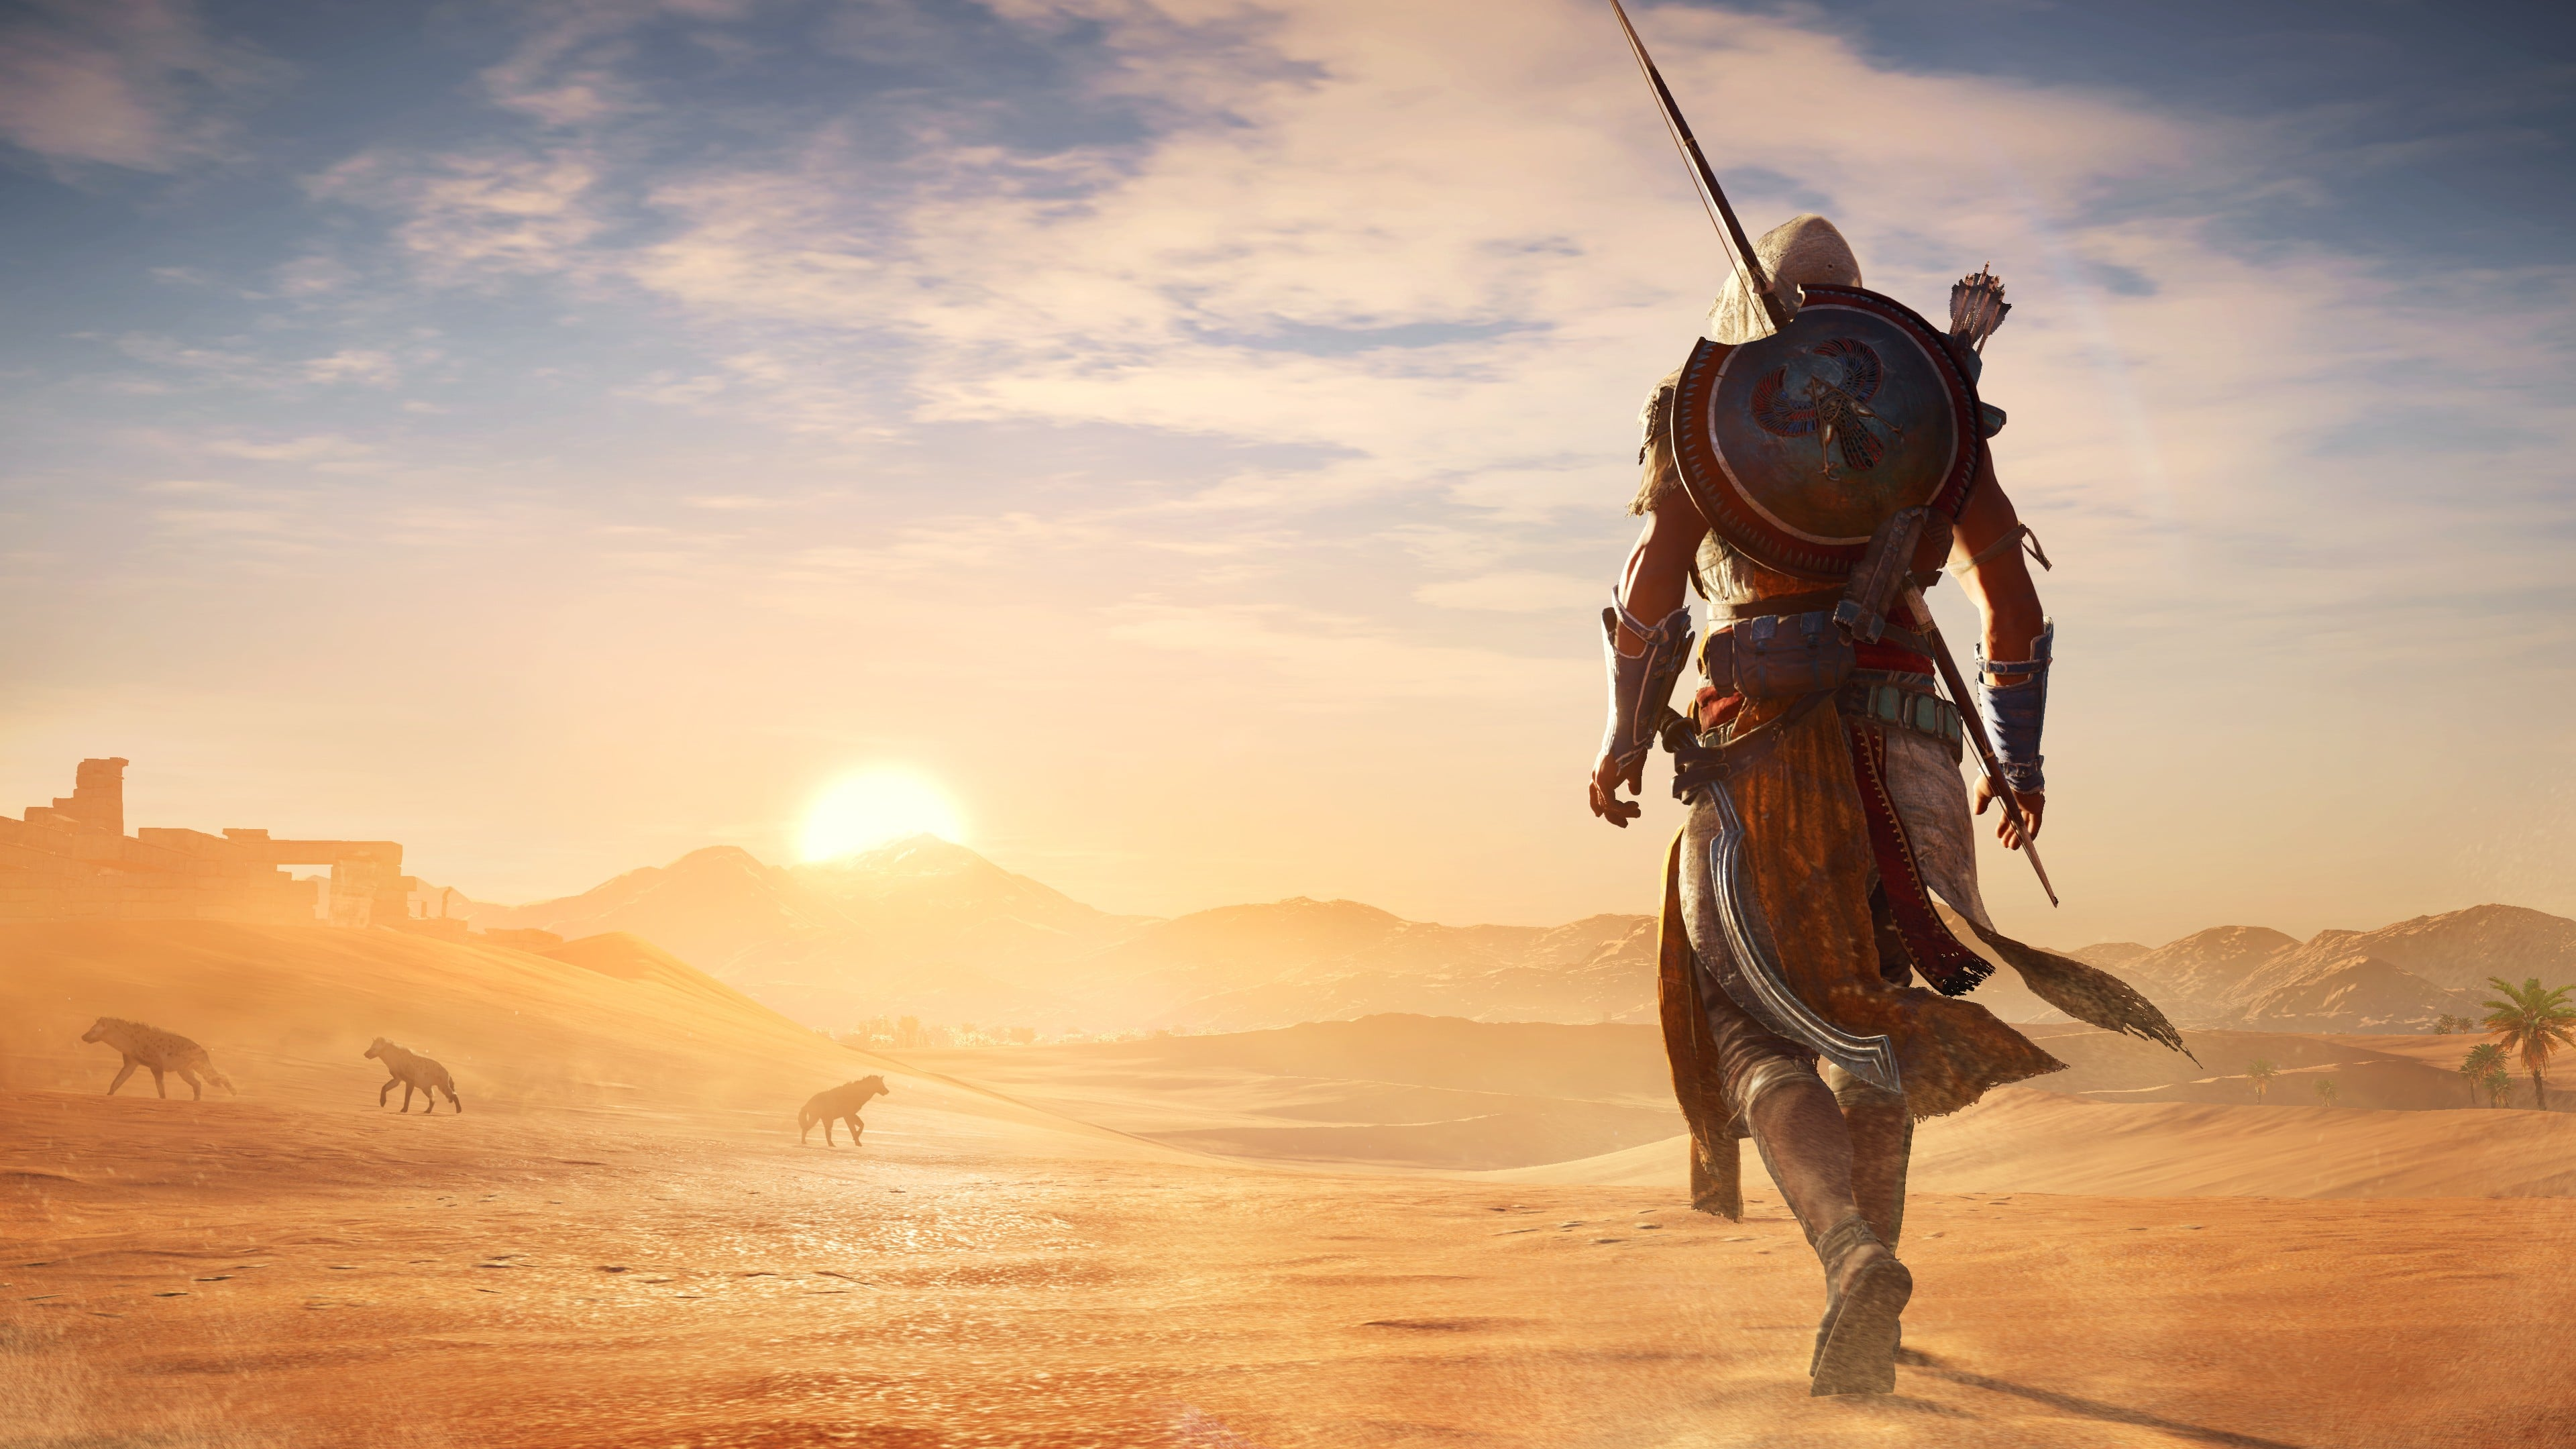 discovery tour mode of assassins creed origins ubisoft - HD 1200×800